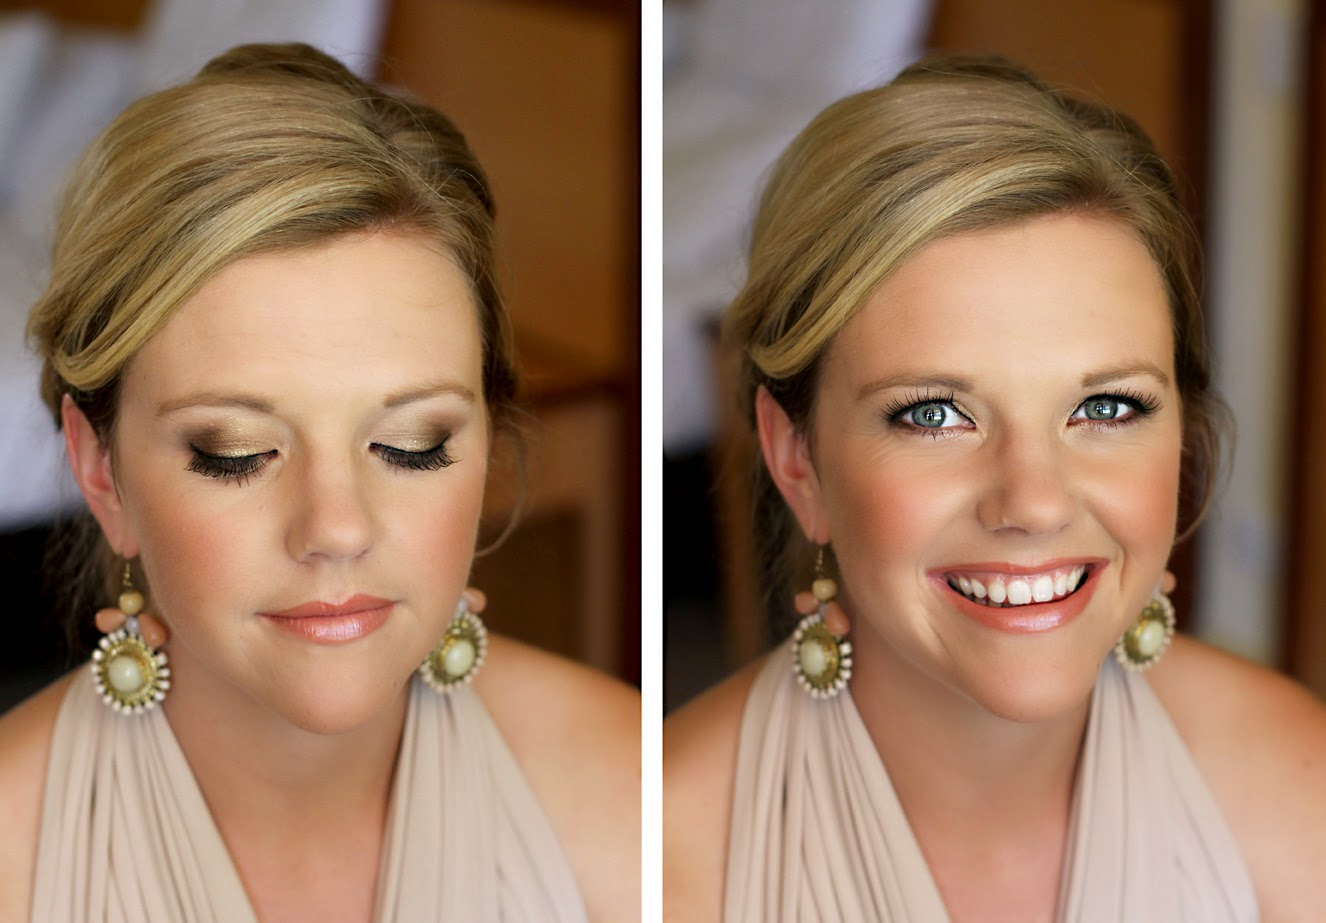 Bohemian Makeup, natural bronze & brown eyeshadow, bridesmaid or bridal makeup. Makeup by Katie Dawson from Perle Jewellery & Makeup